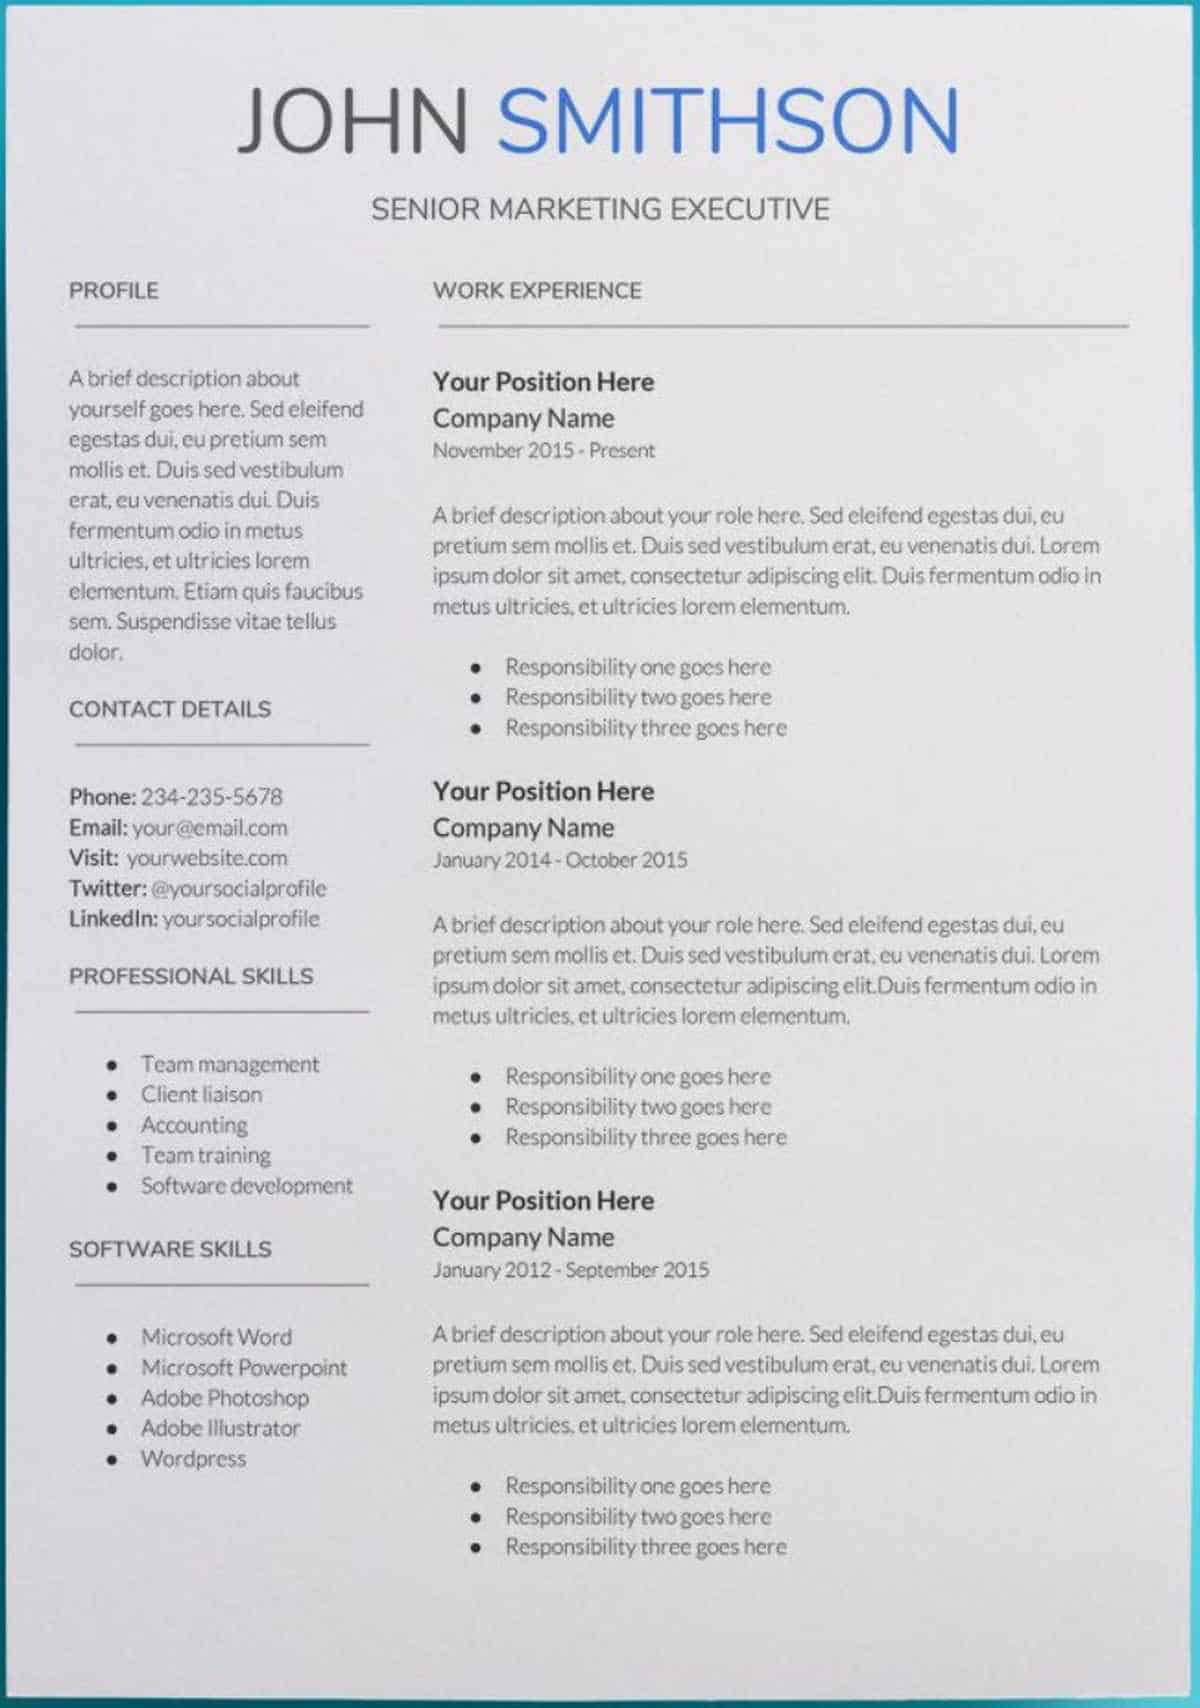 google docs resume templates downloadable pdfs documents saturn template free work from Resume Google Documents Resume Templates